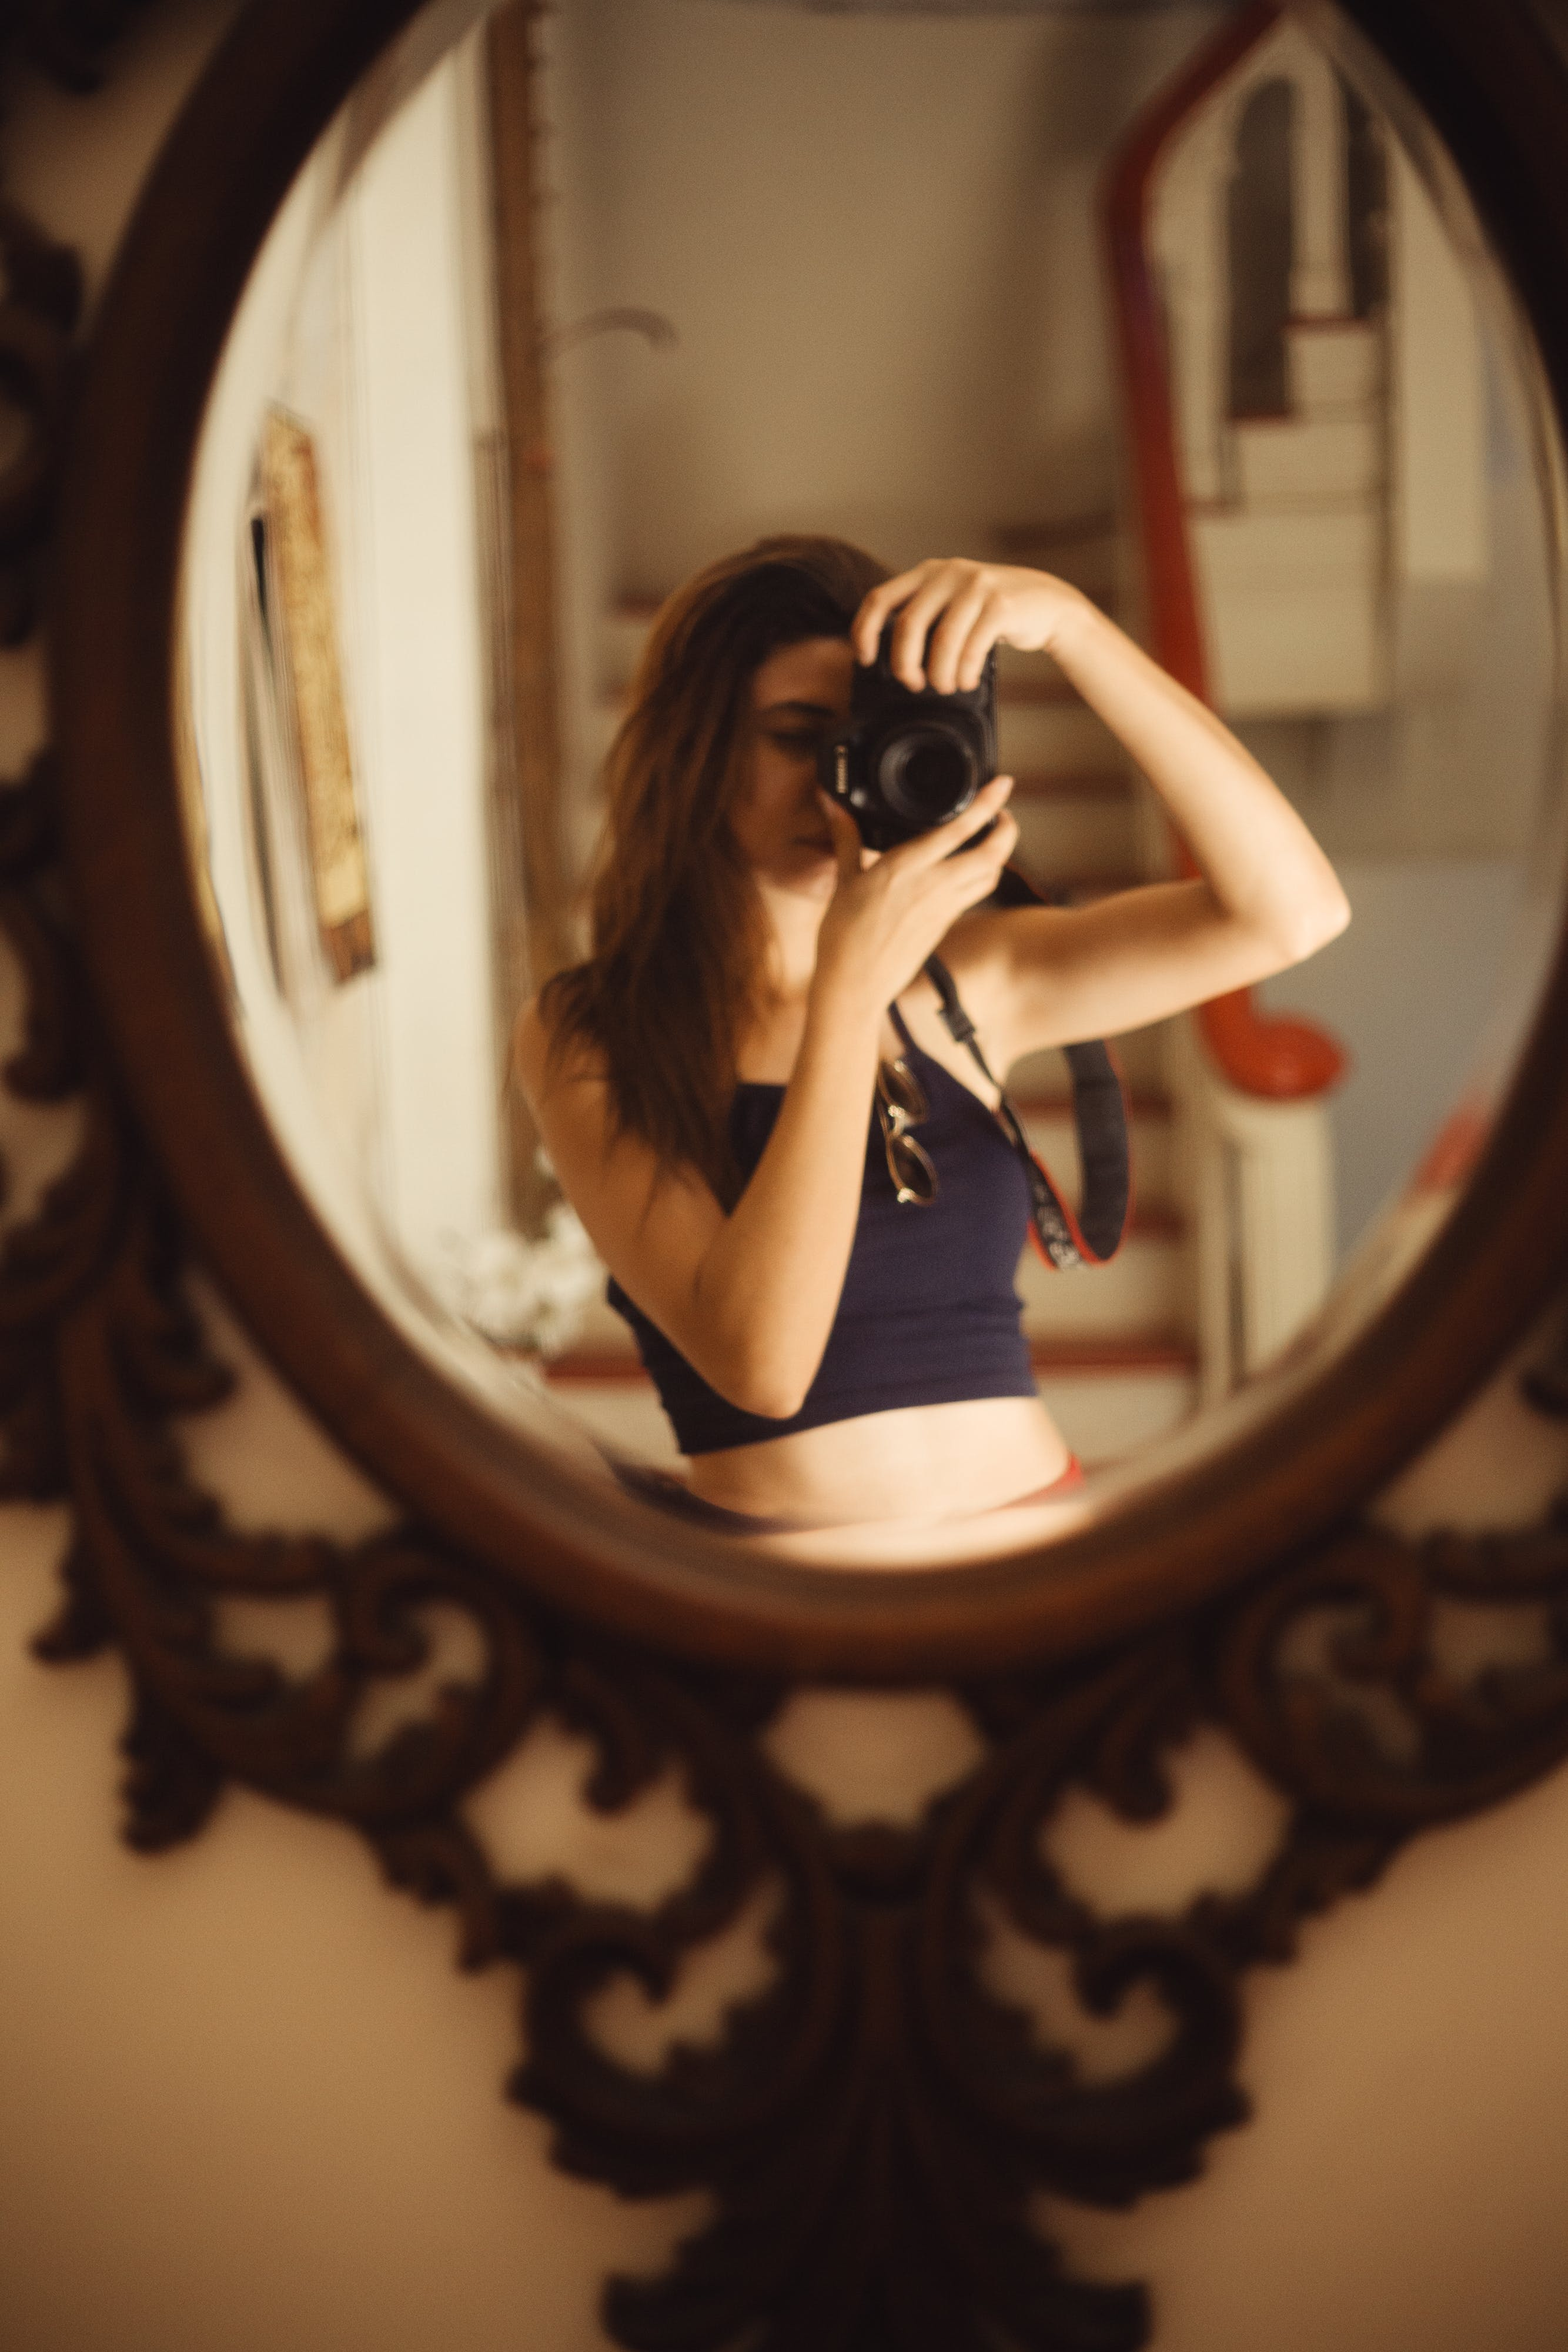 Woman Taking Selfie in Front of Mirror Using Dslr Camera